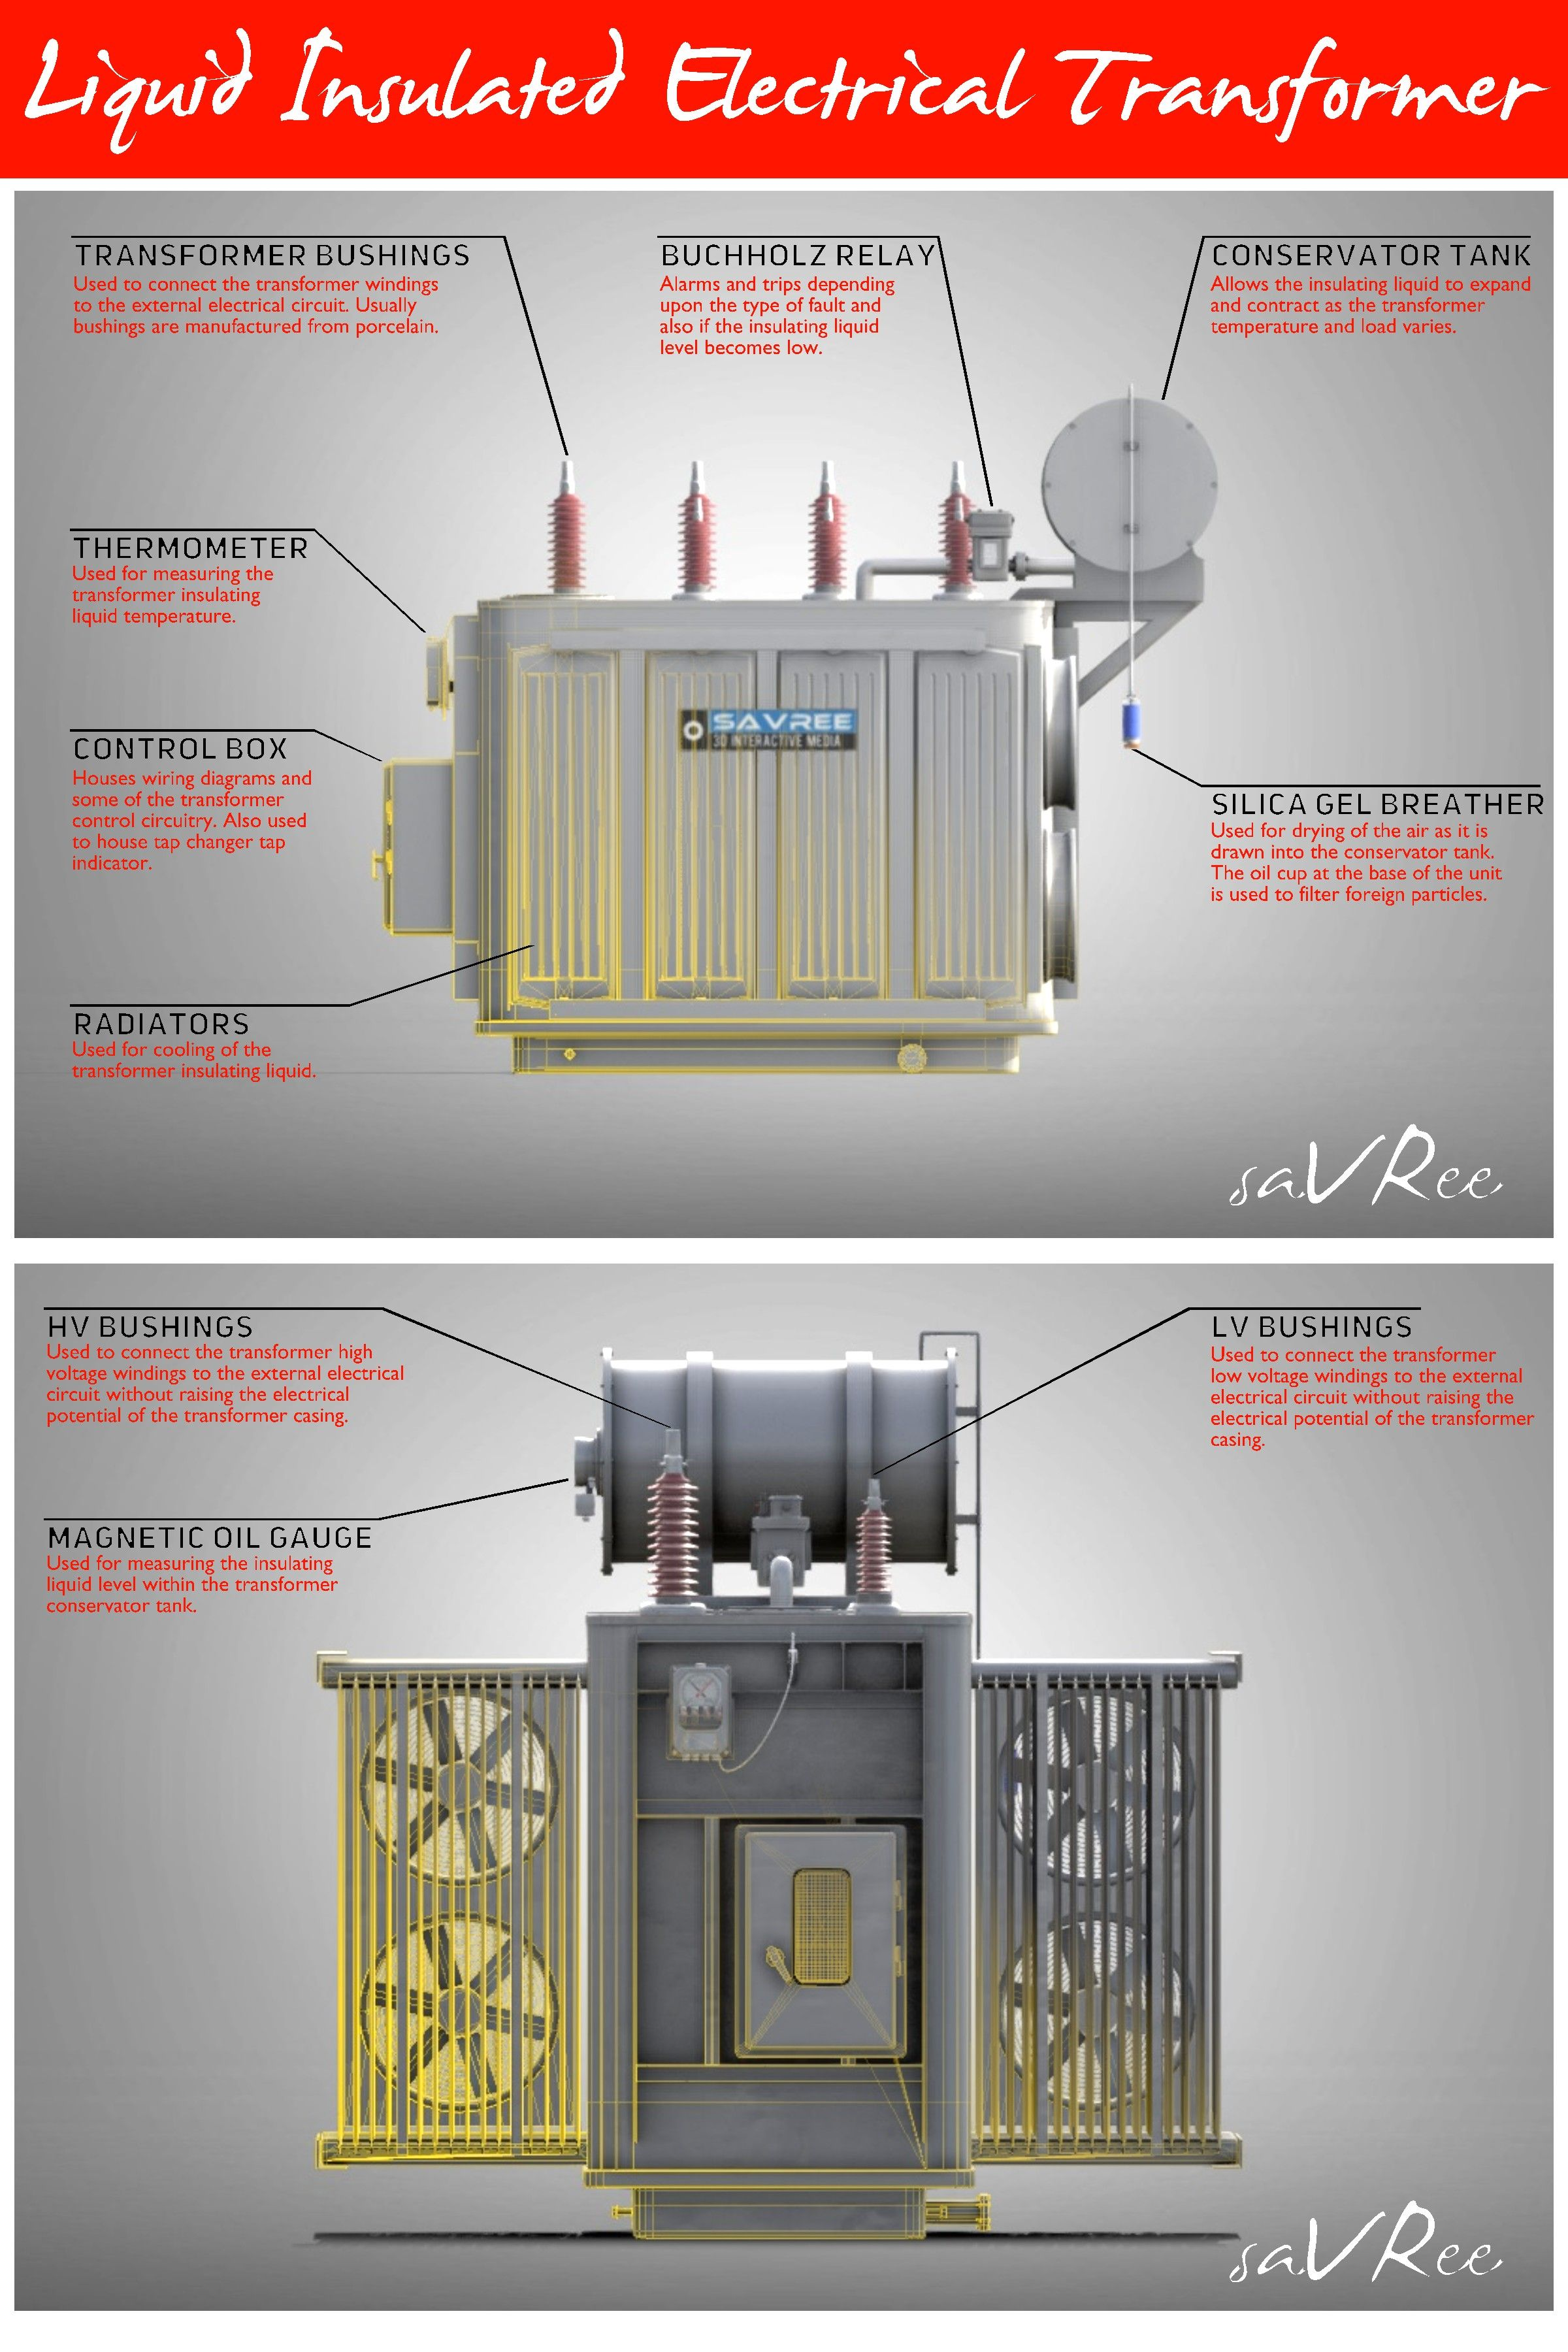 medium resolution of this pin shows the liquid insulated electrical transformer used in the power engineering industry its